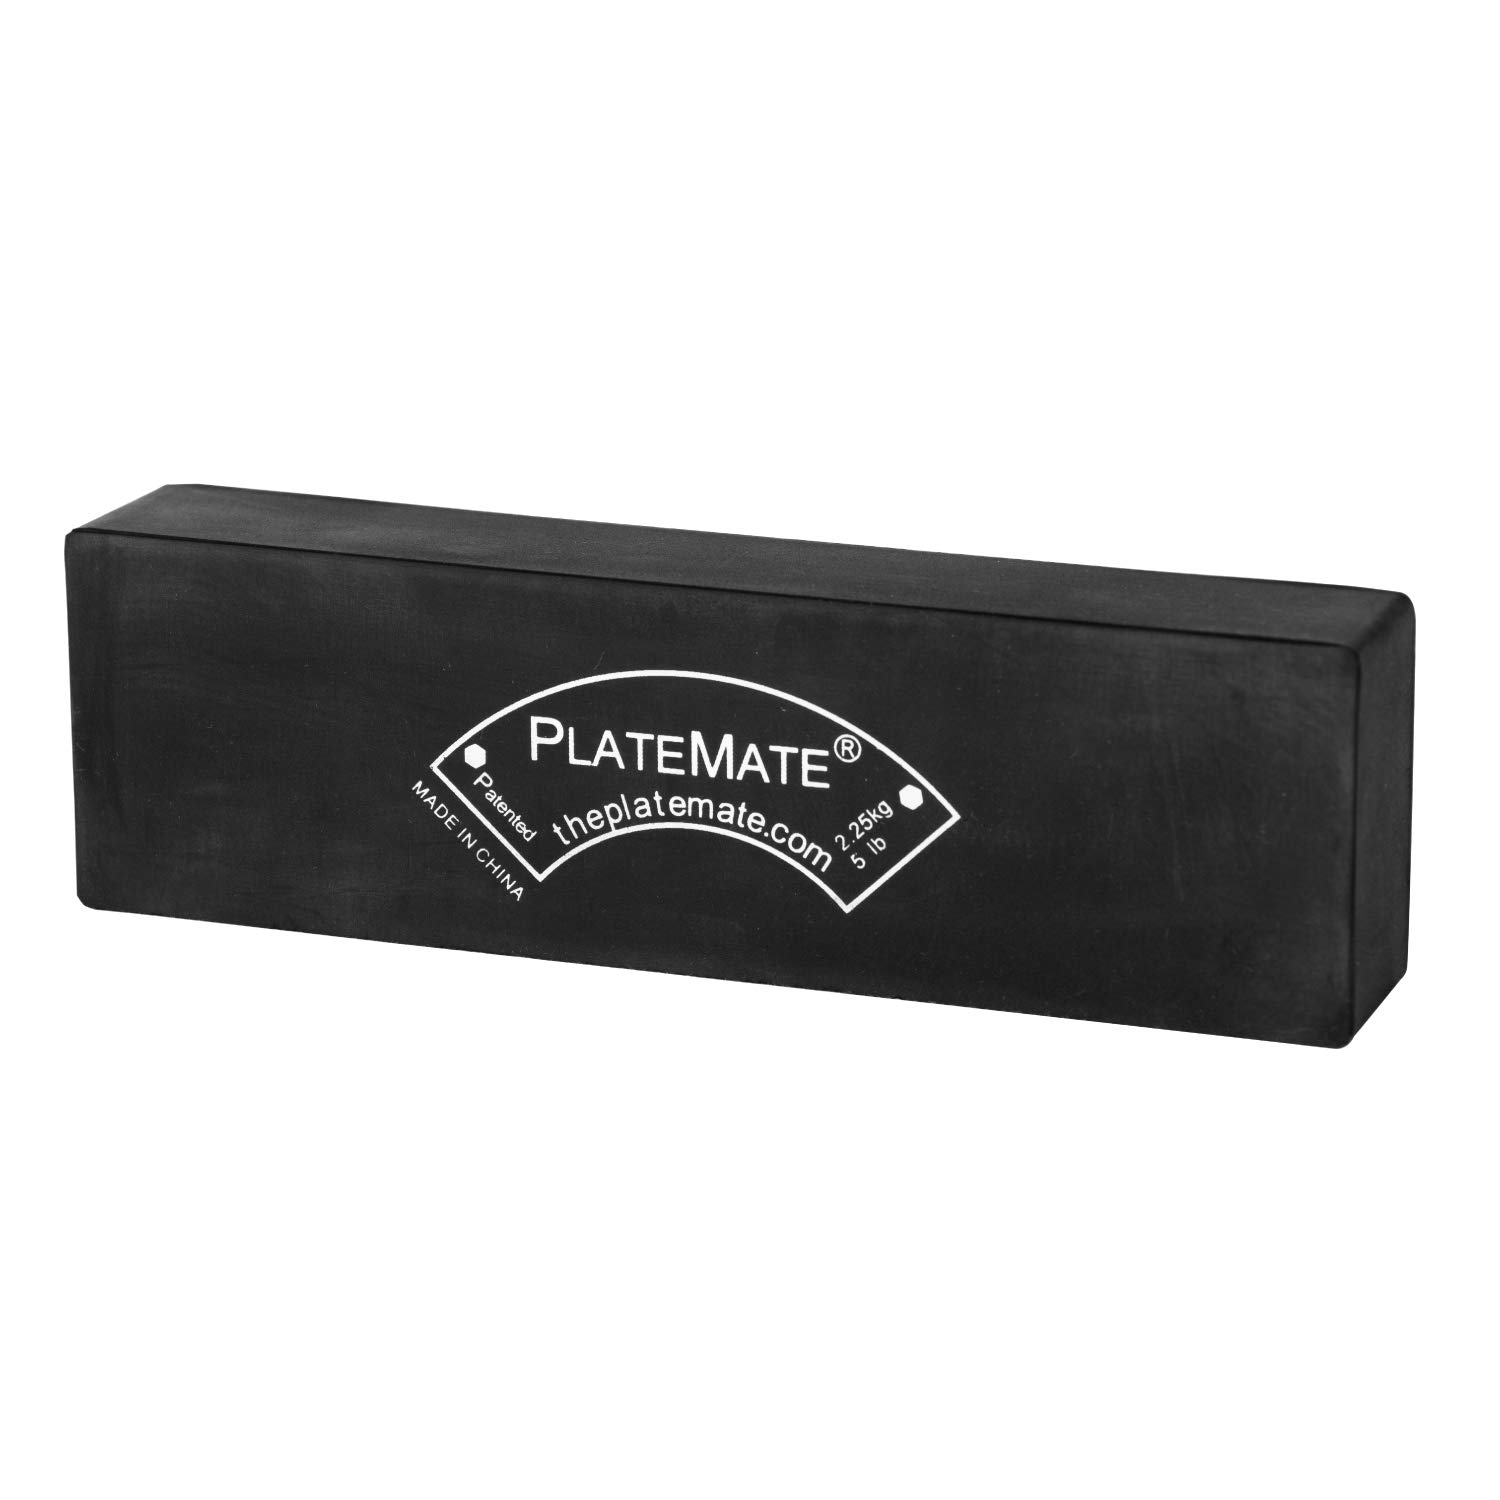 Plate Mate 5 lb. Brick (Single) - Magnetic Add-On Weight for Selectorized Weight Stack Machines by Plate Mate